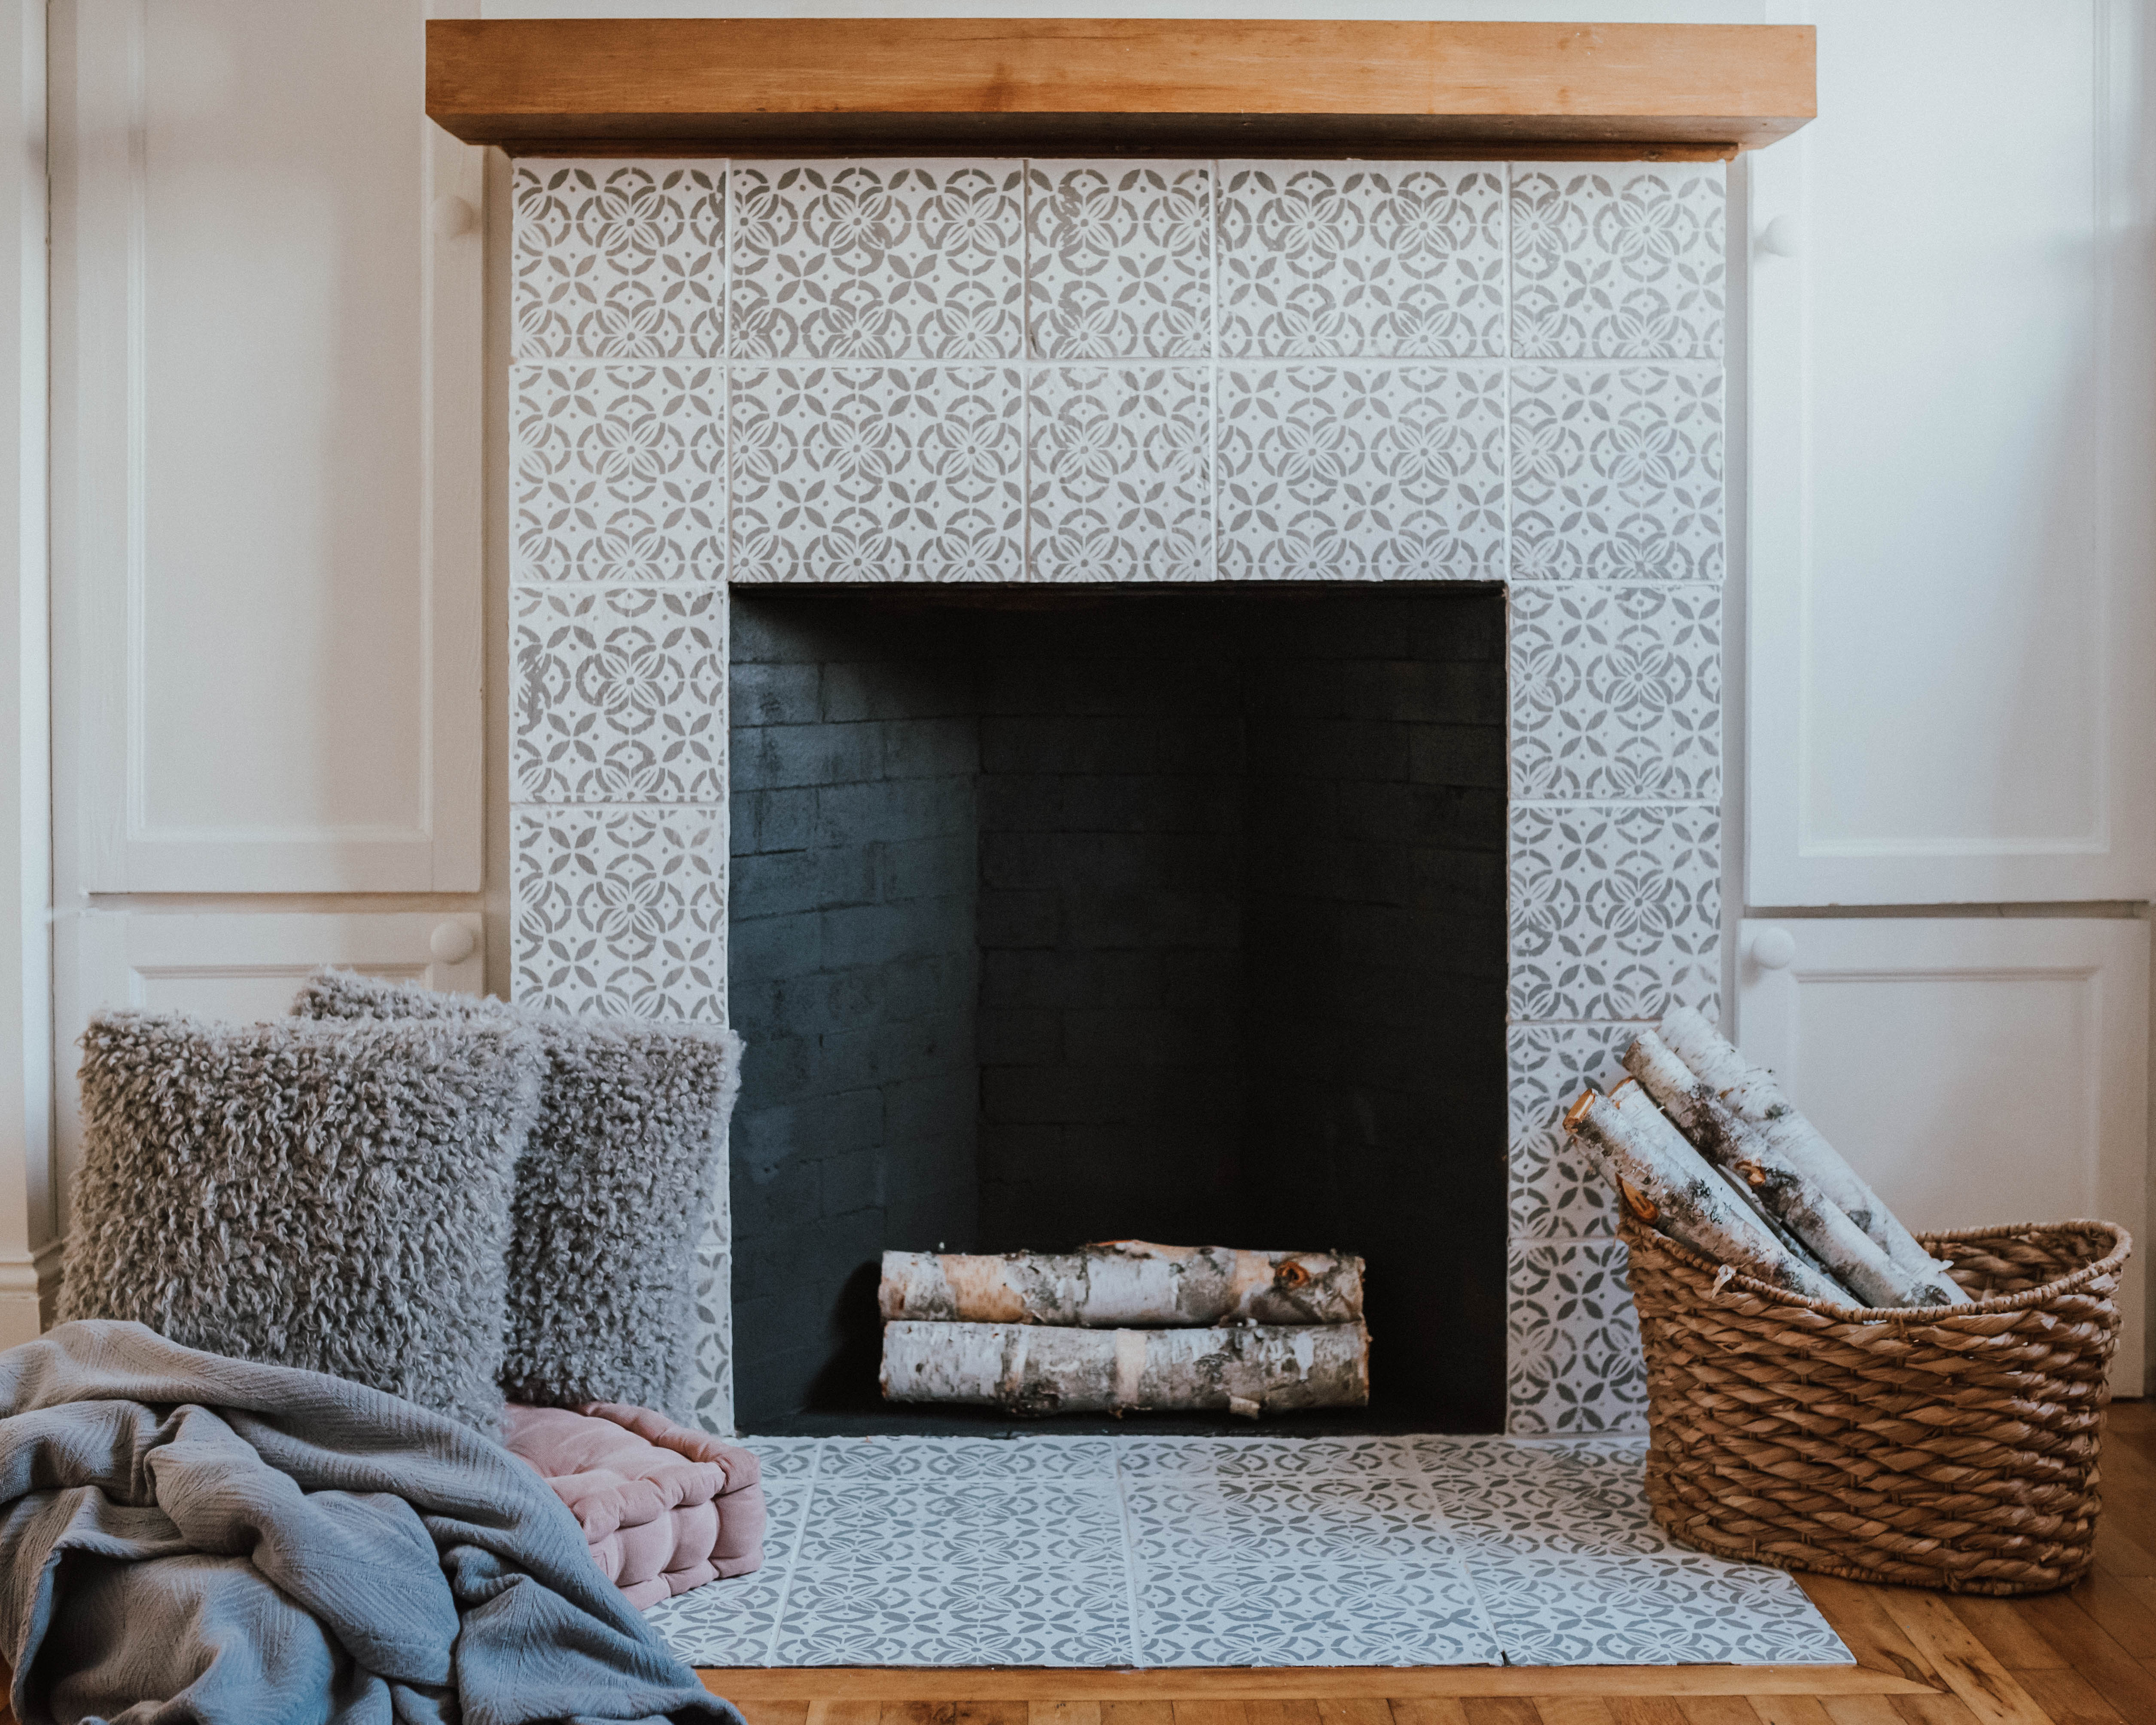 My $100 Fireplace Makeover with Behr Paint | The Wild Decoelis